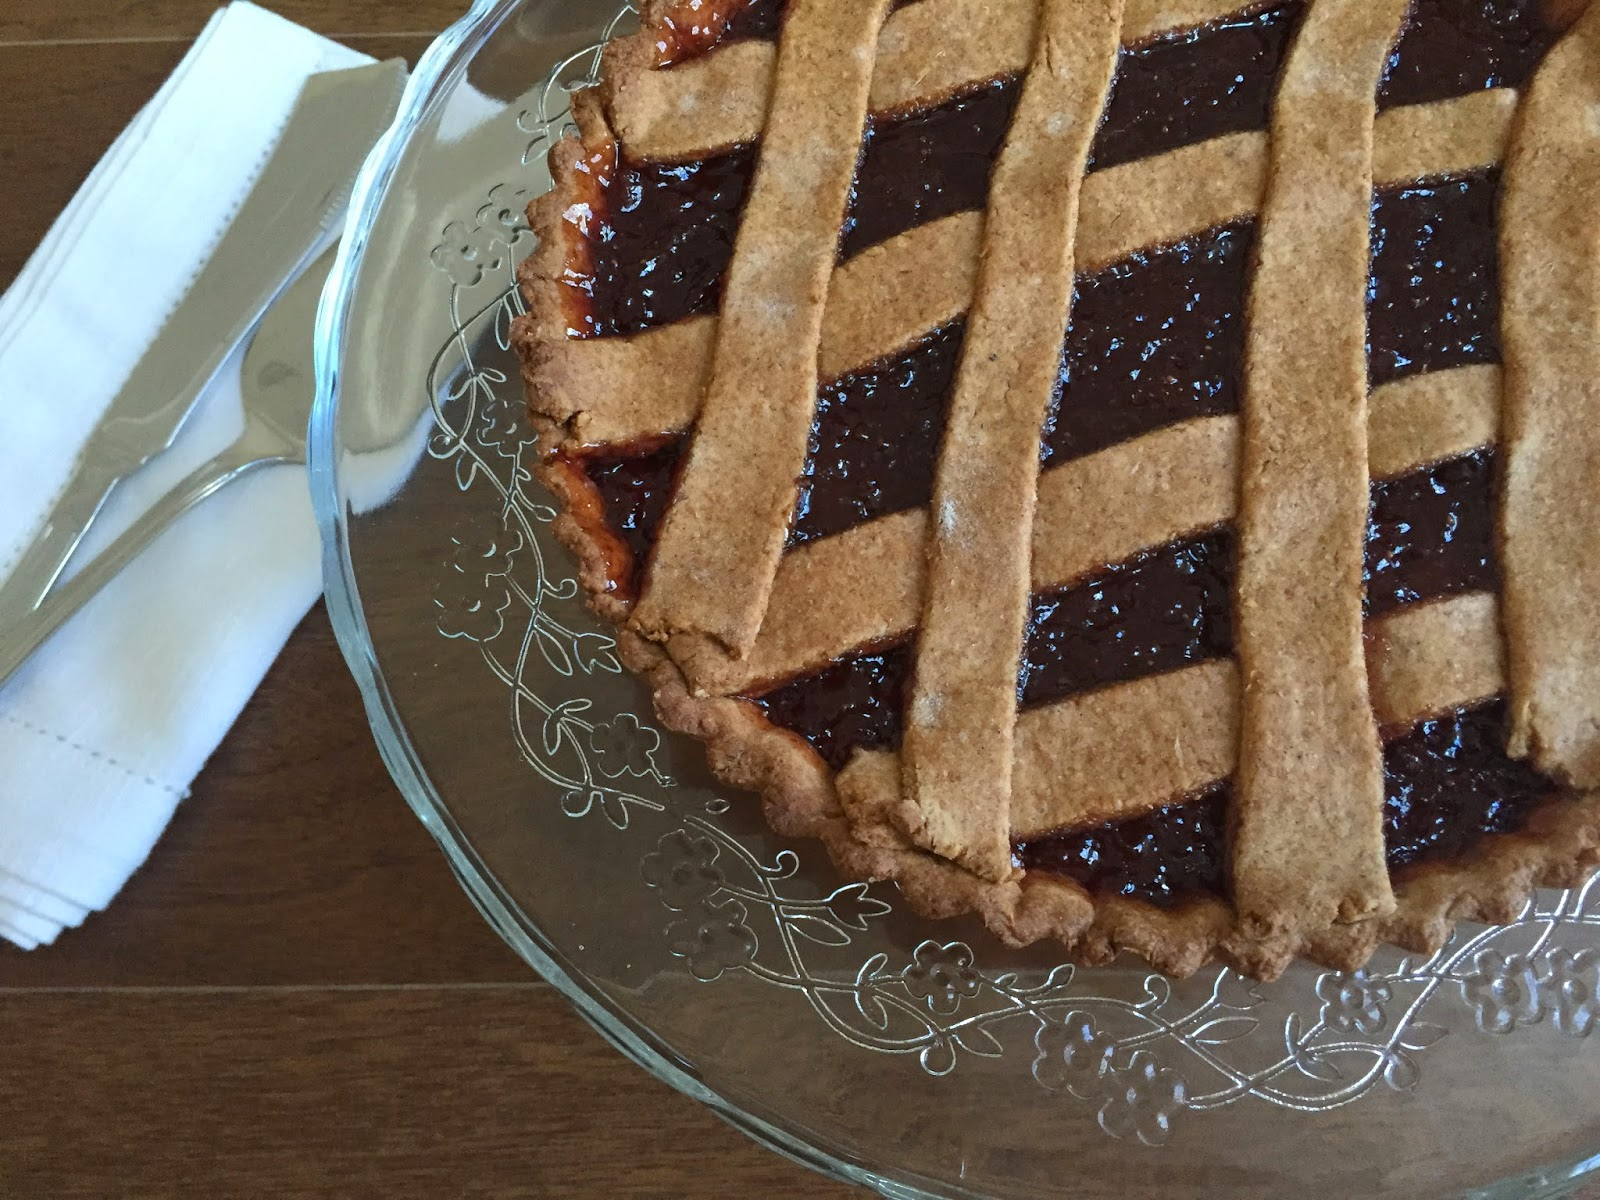 Jam crostata with spelt and olive oil crust